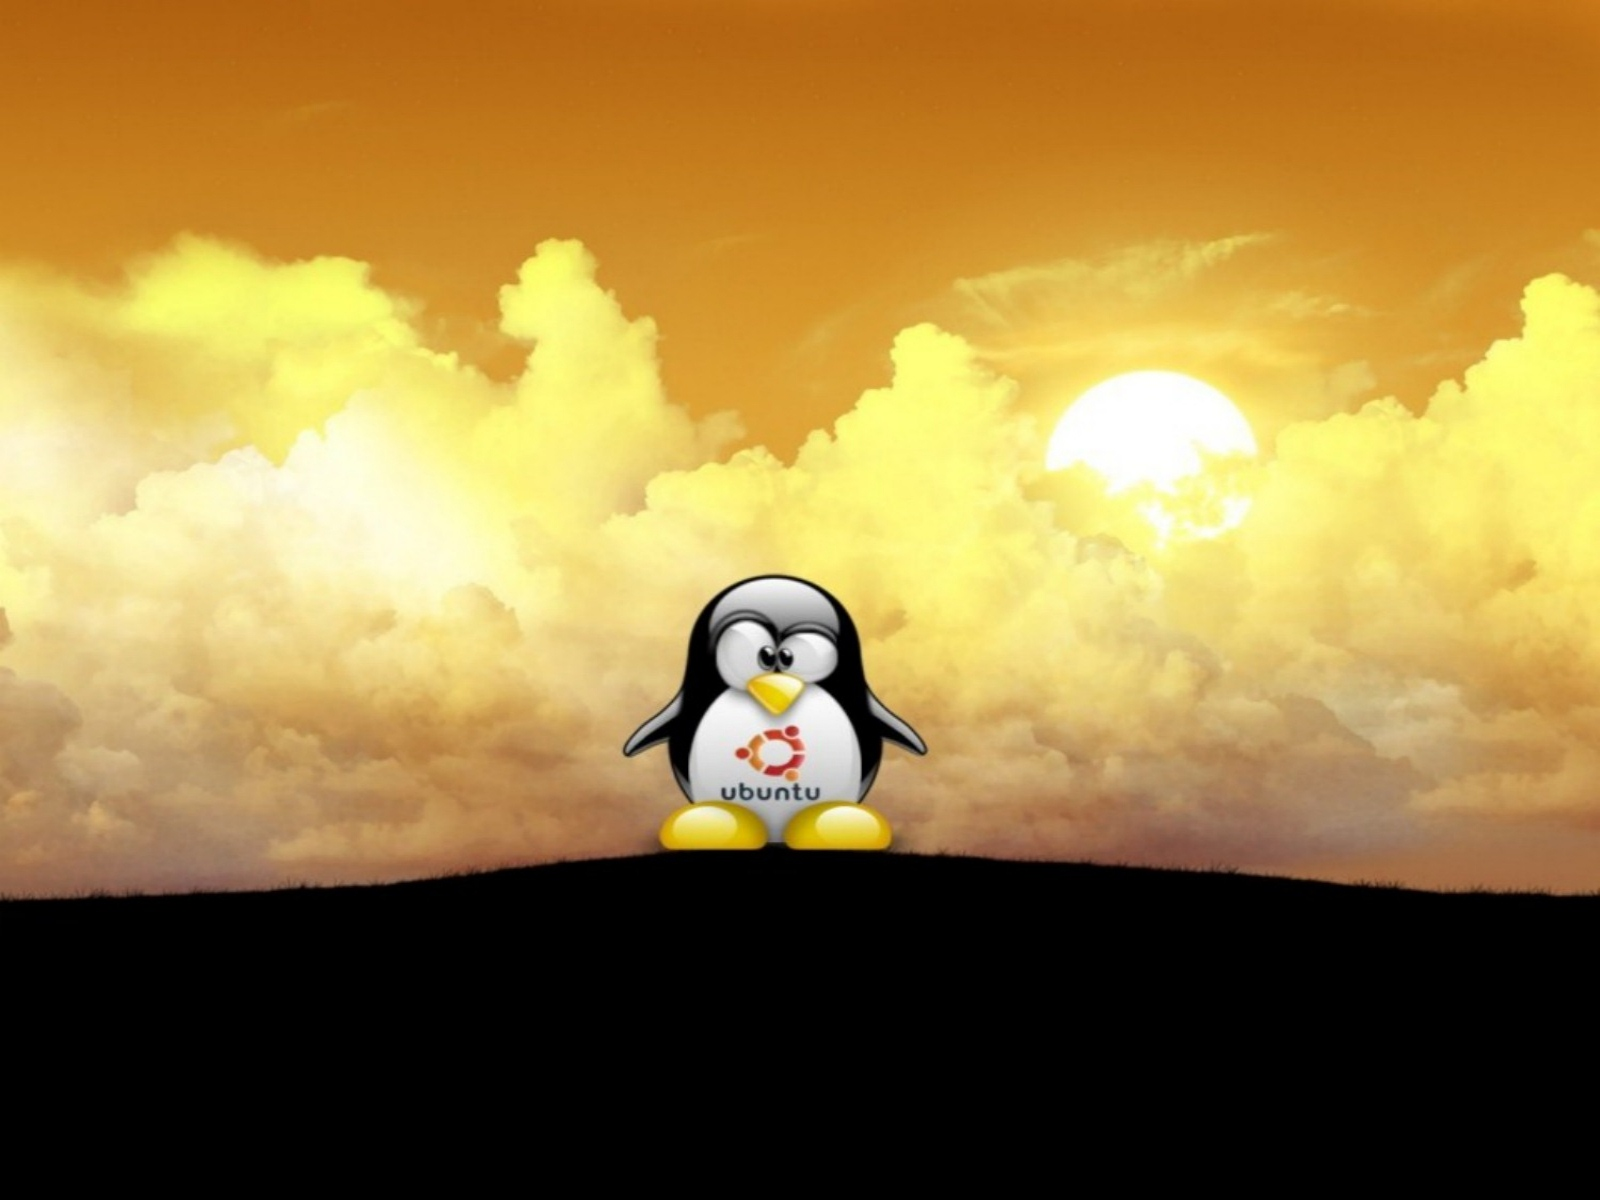 Best Friend Wallpapers For Iphone Penguin ubuntu wallpaper tux 1600x1200